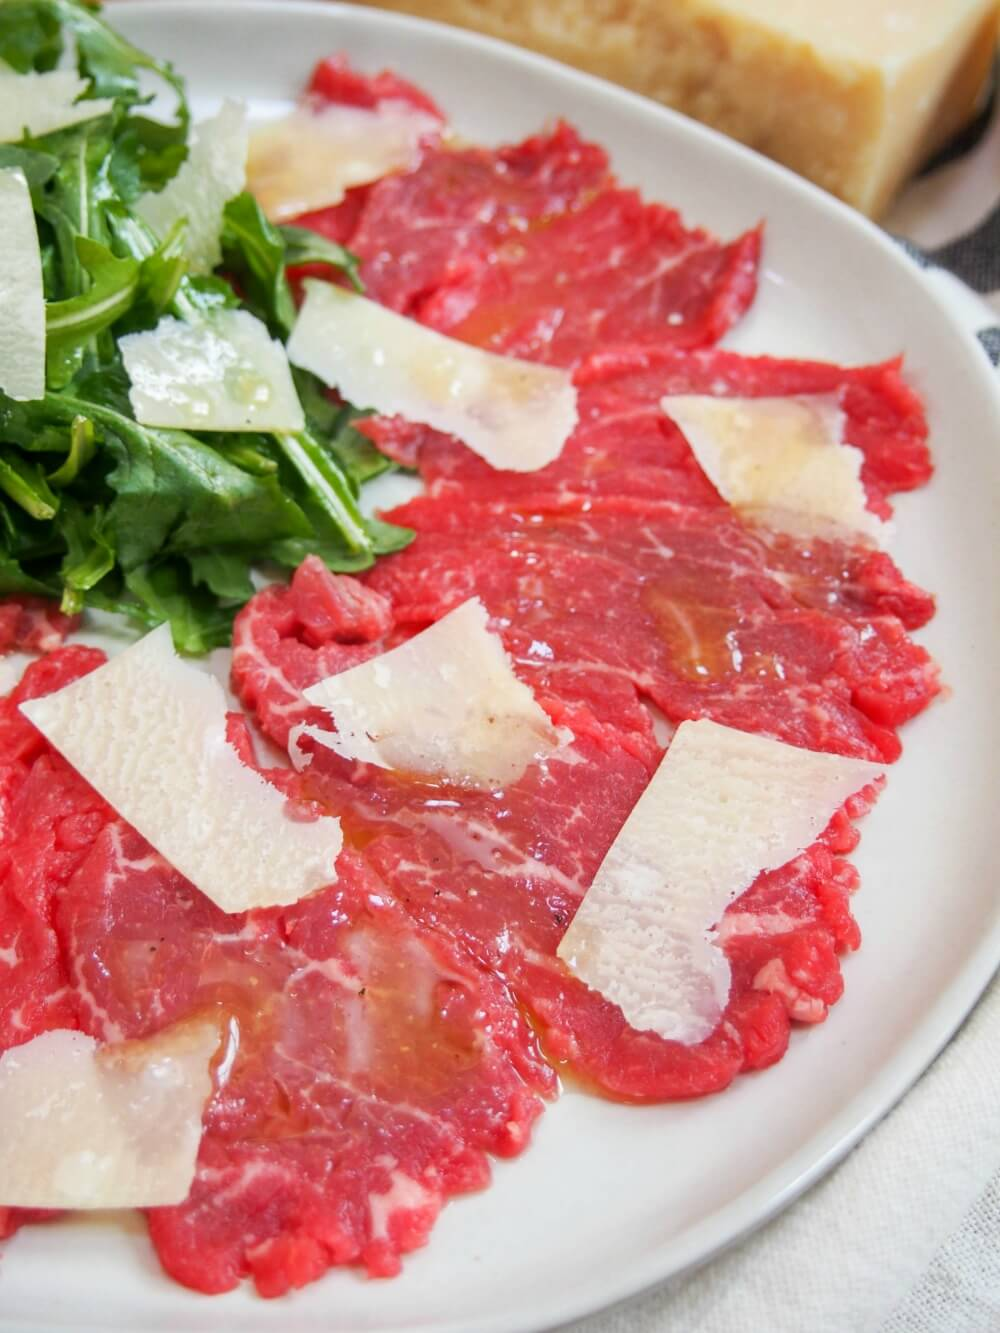 Beef carpaccio with truffle vinaigrette